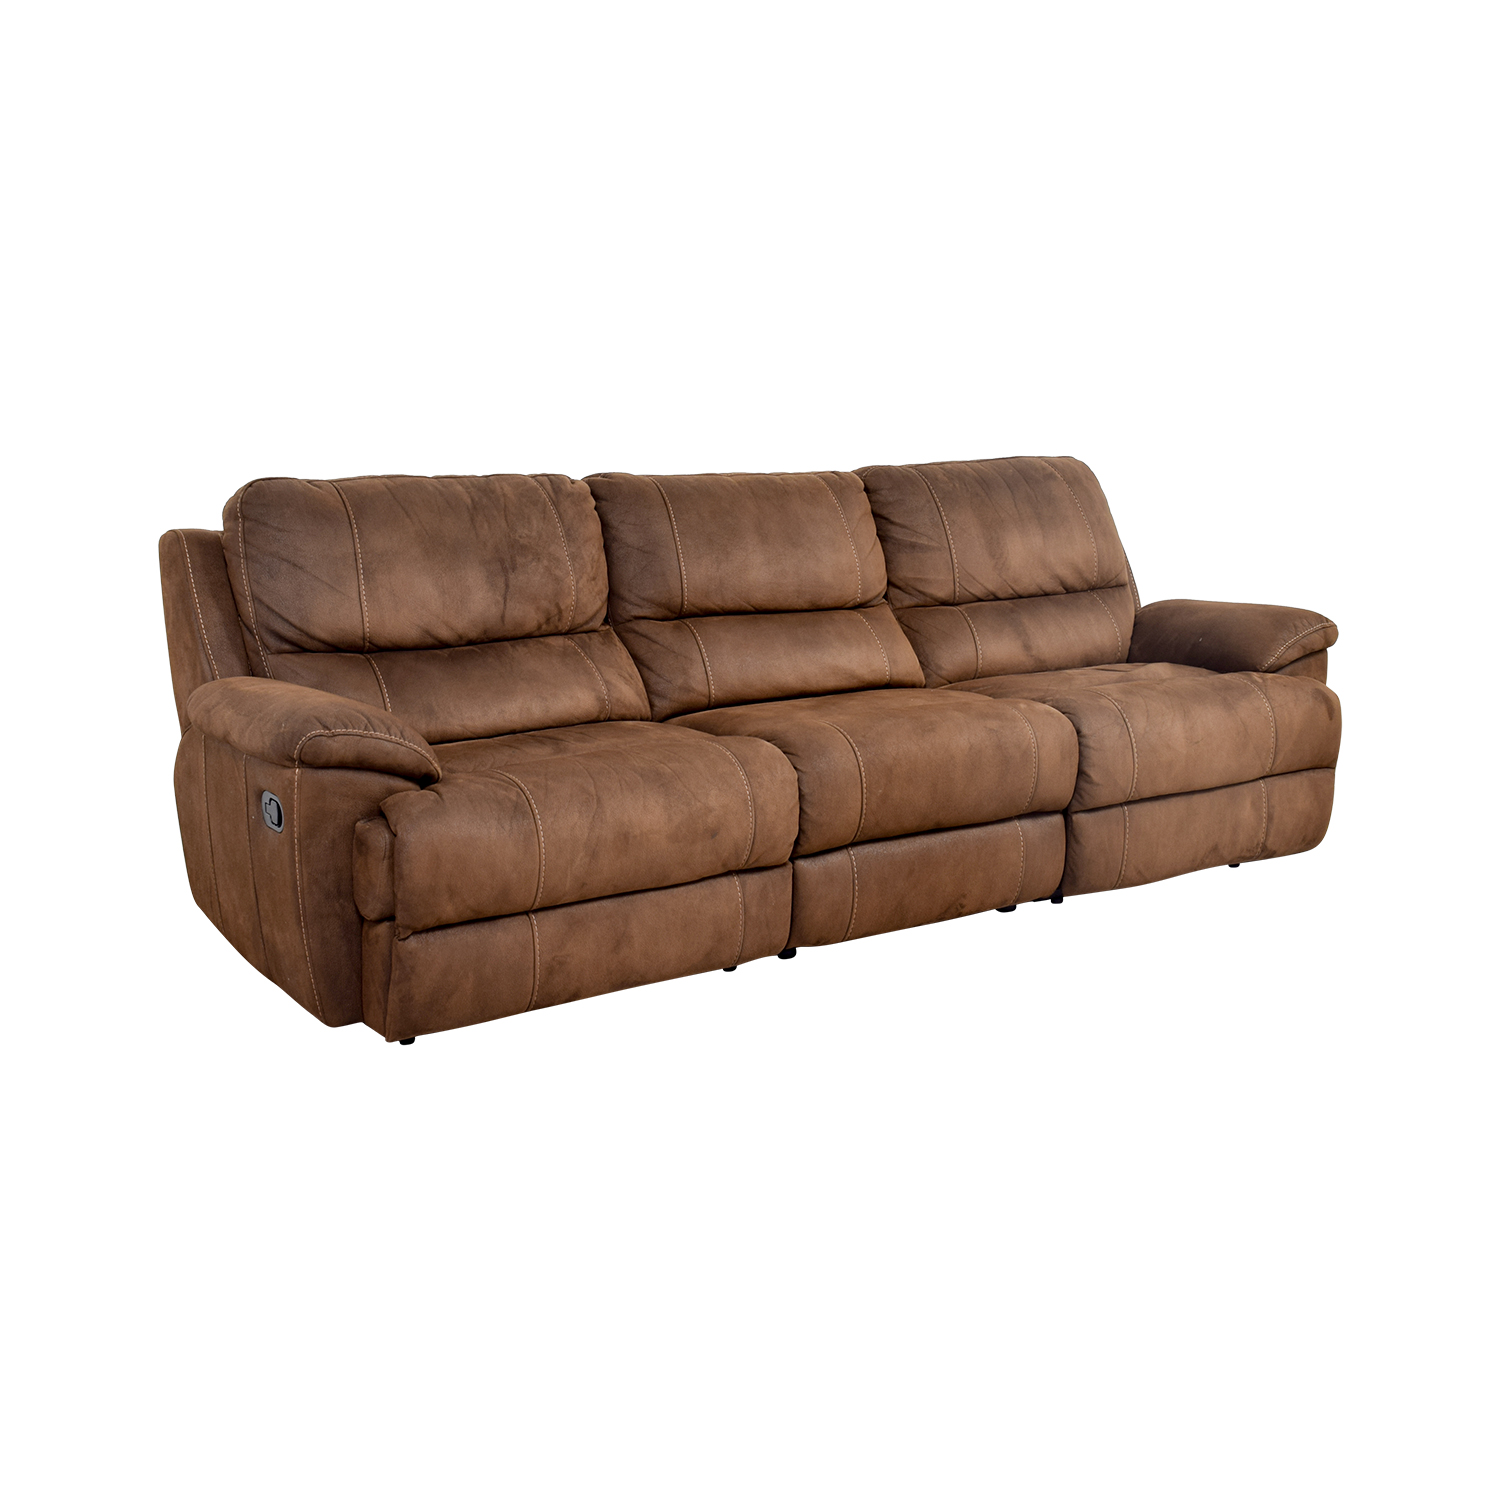 haverty sofa baxter chester moon preis 88 off 39s reclining sofas